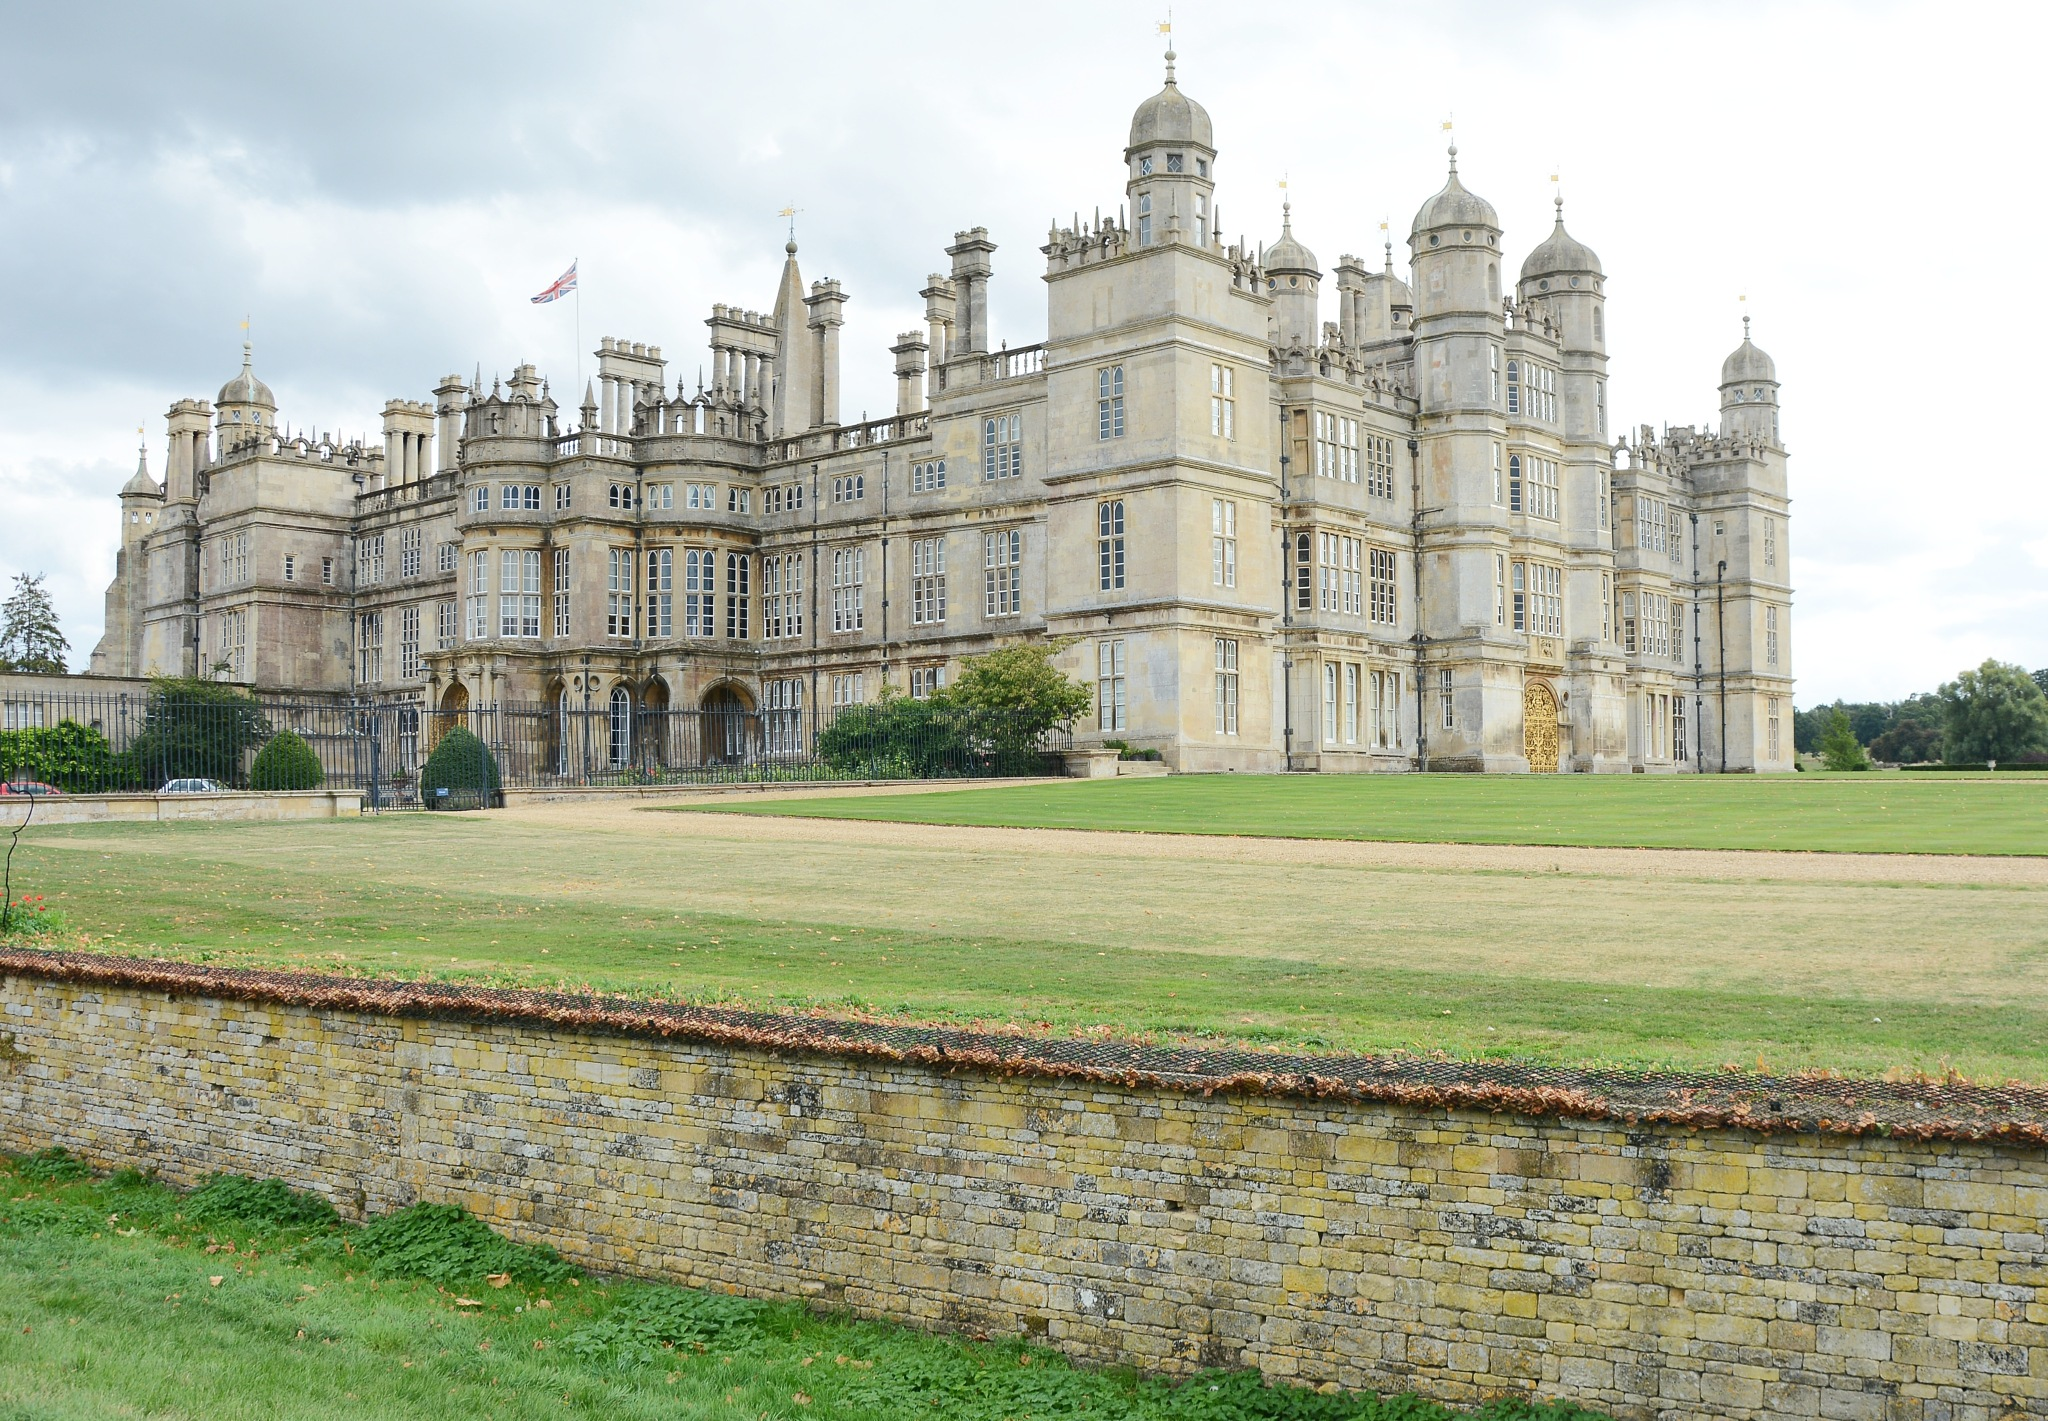 Burghley House by cliff.edmundson.3